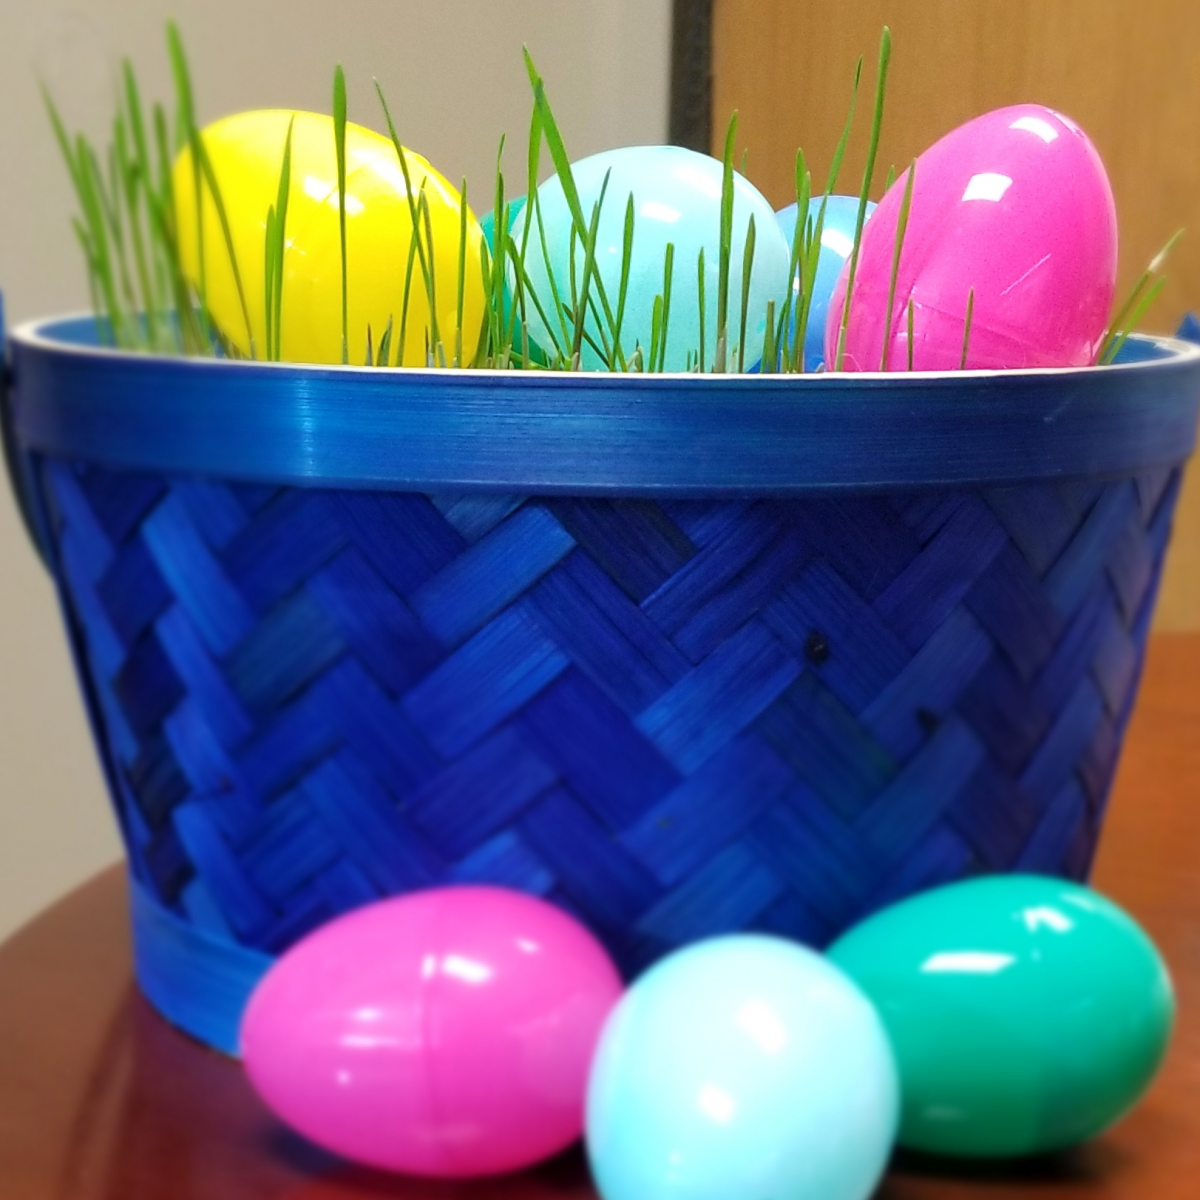 Photo: Wheat Grass Easter Basket.